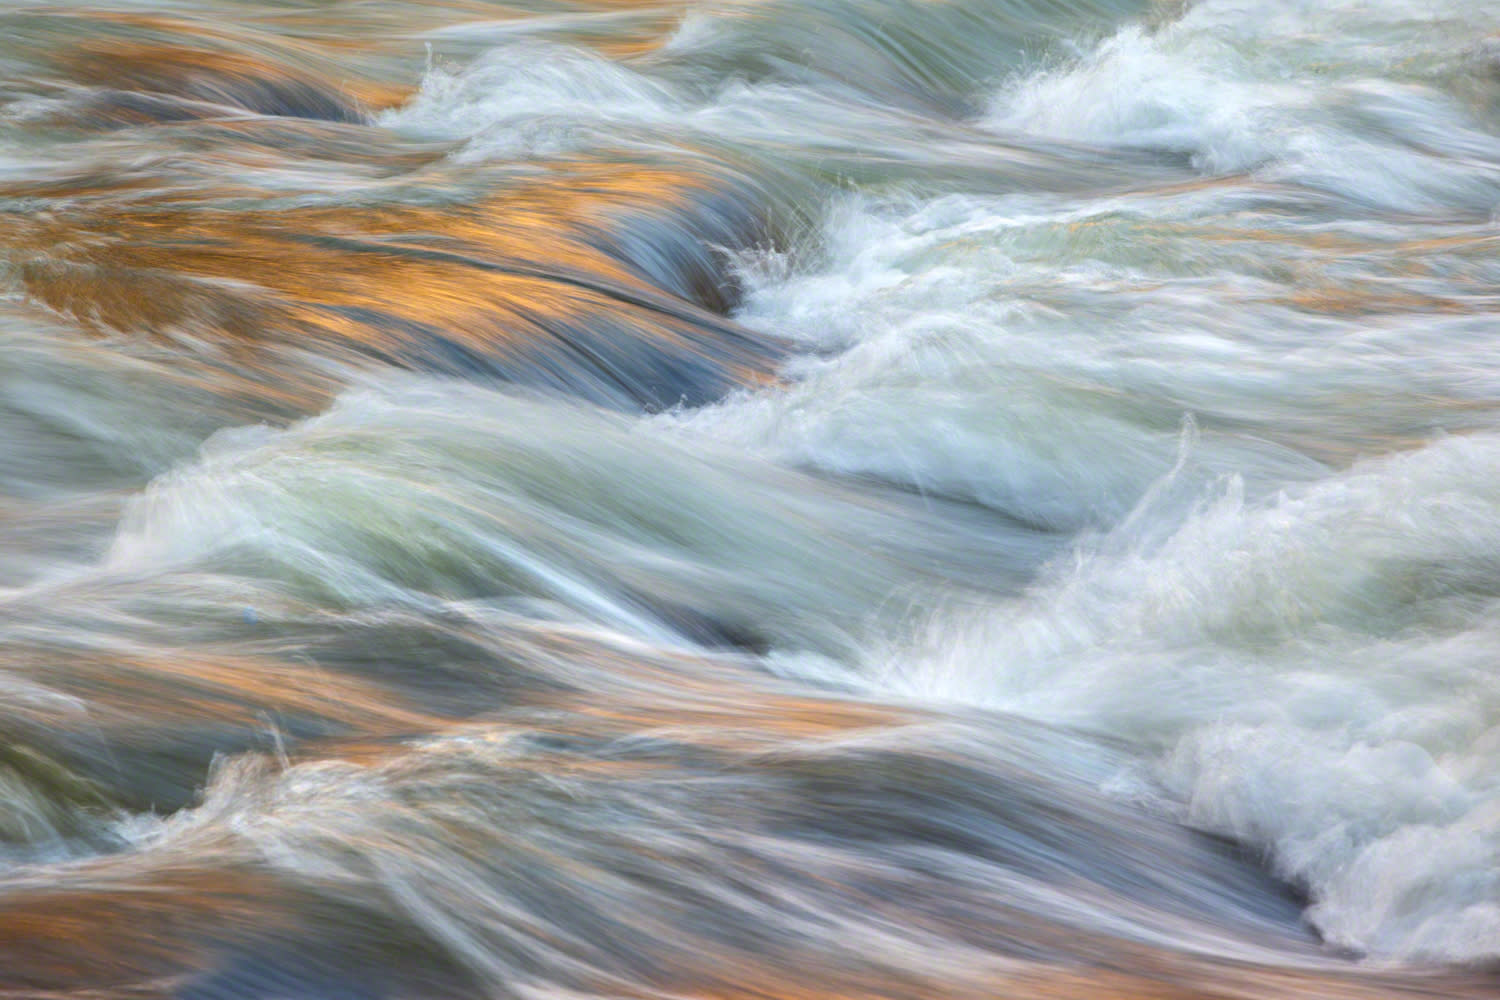 Rapids merced river may 2014 pqlujs